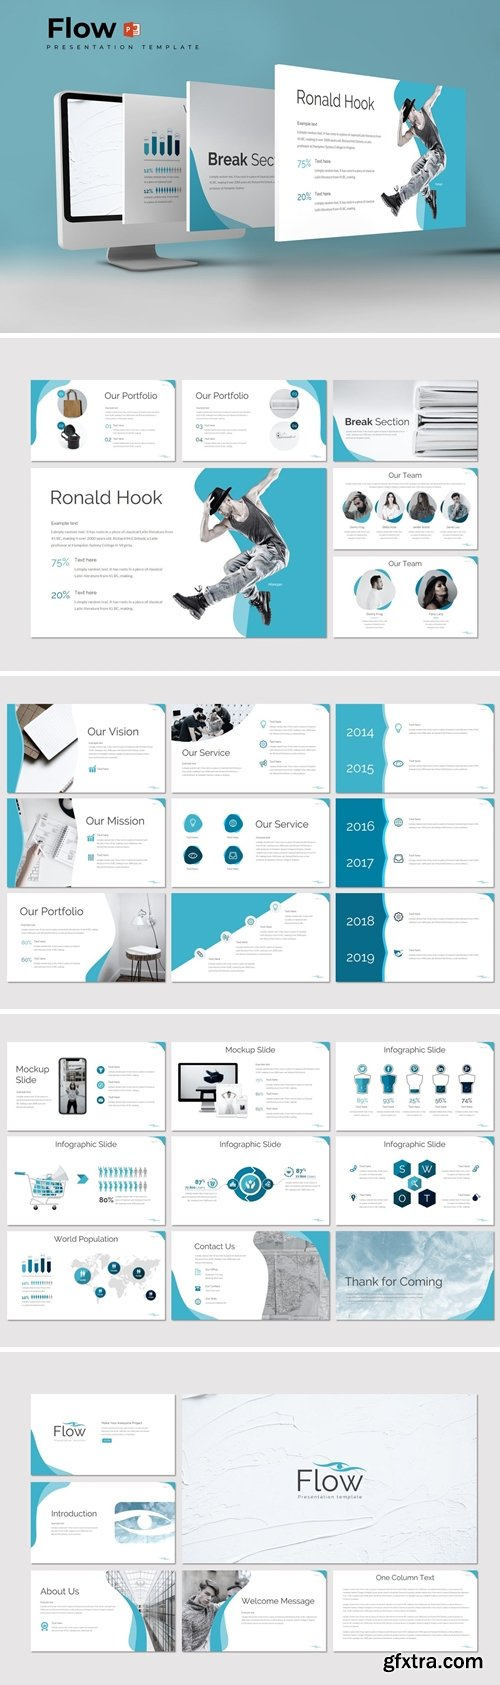 Flow Powerpoint Google Slides and Keynote Templates